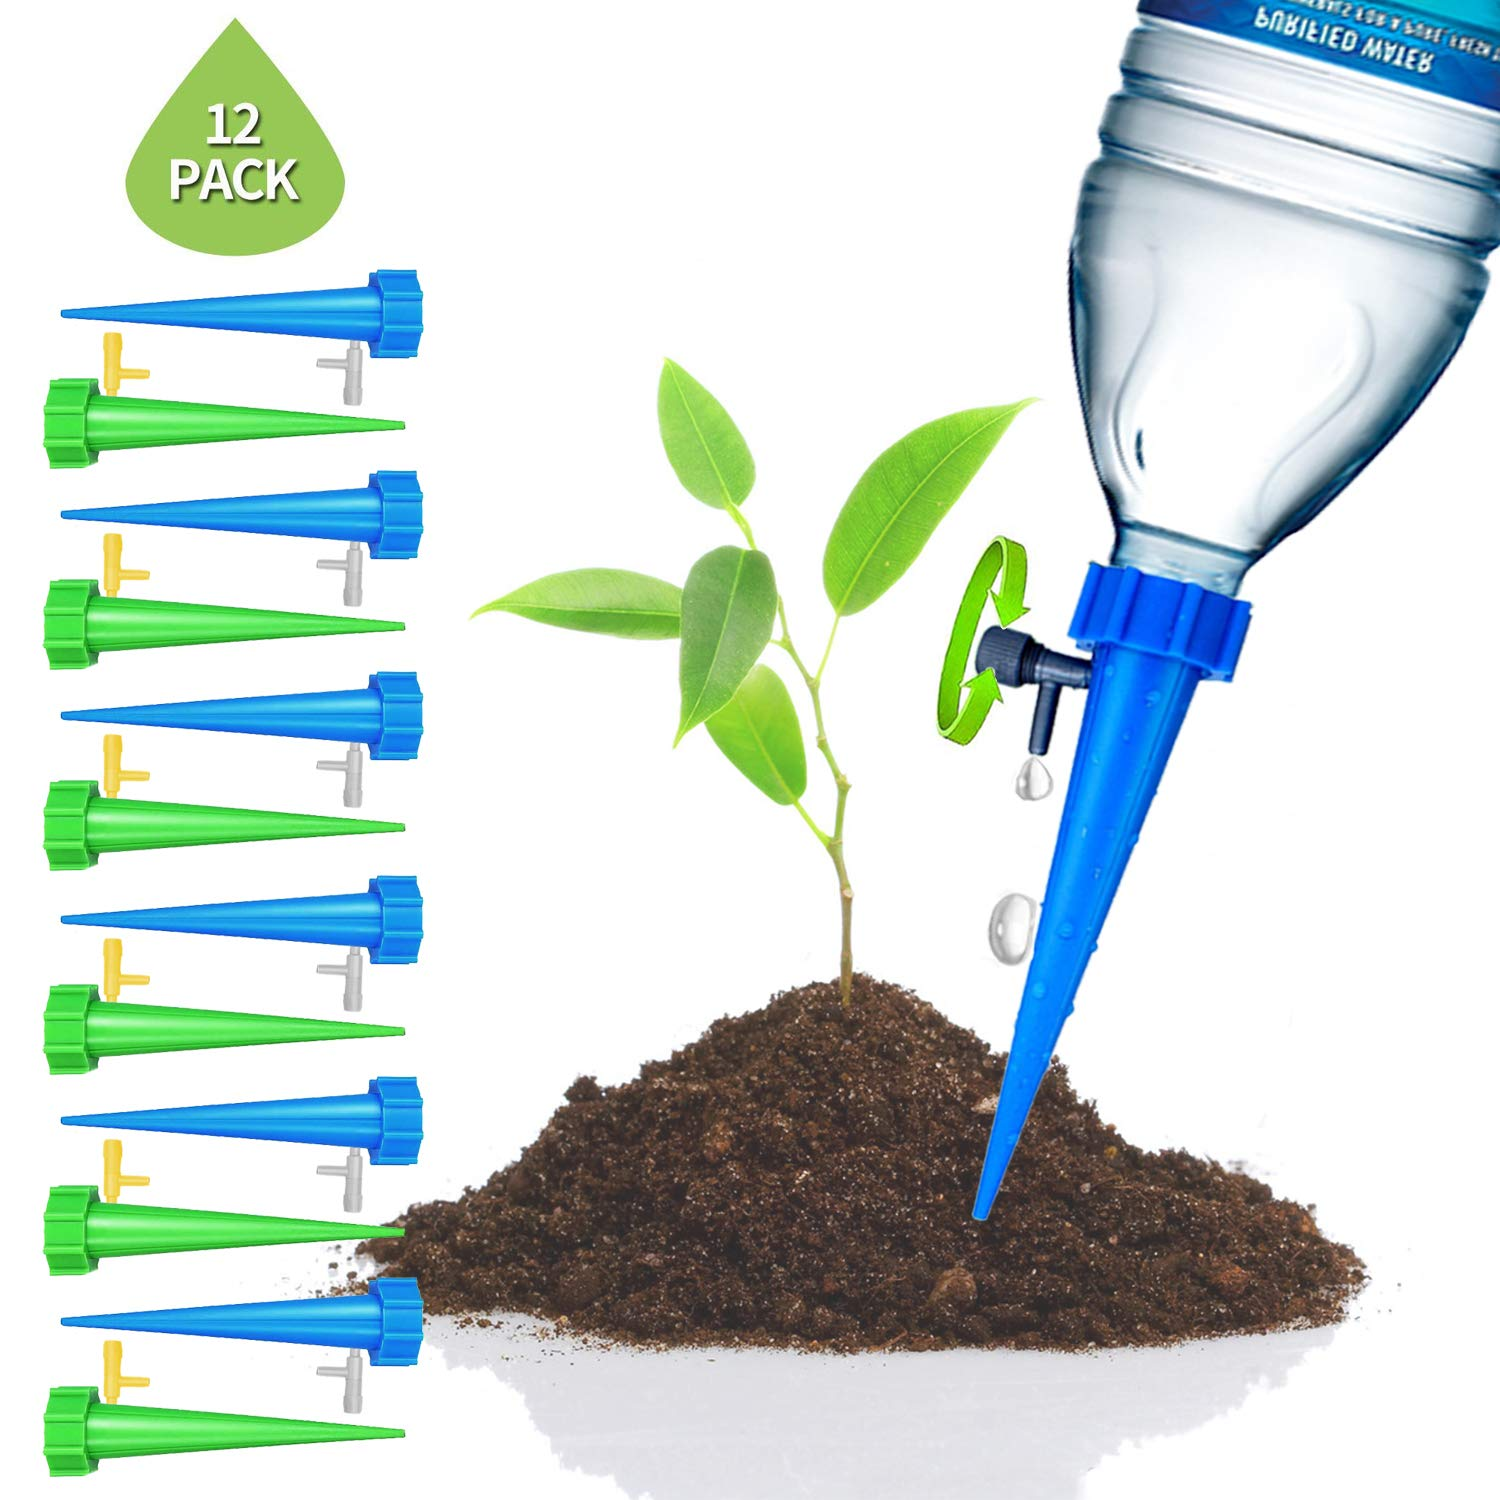 SIKSIN PlantWaterer Self Watering Devices, Vacation Potted Plant Watering Spikes Automatic Drip Irrigation Water Stakes System with Control Valve Switch for Garden Plants Indoor & Outdoor (12packs) by SIKSIN